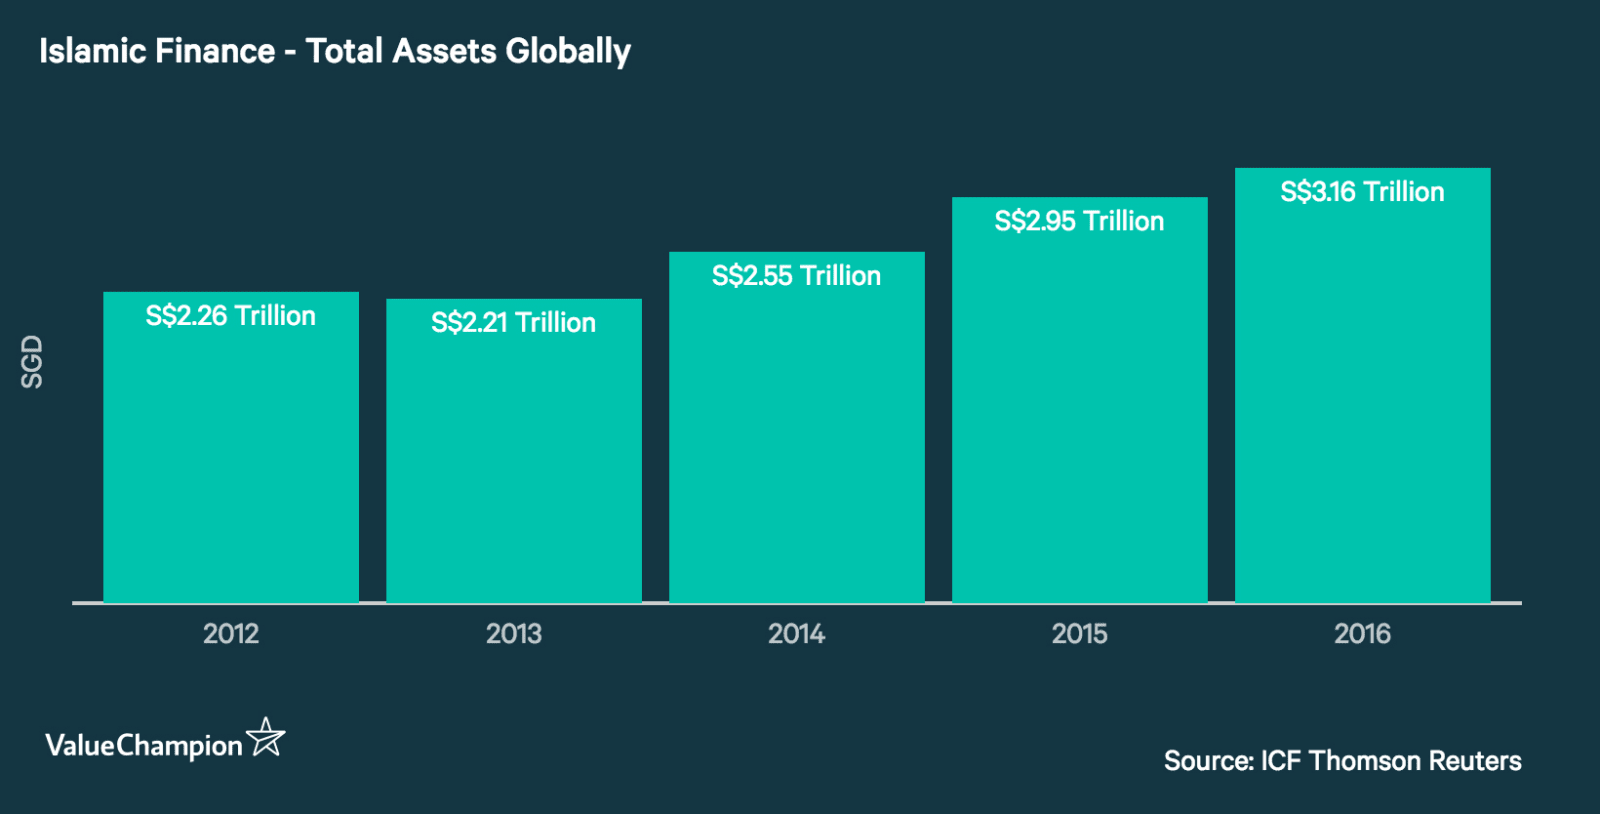 Islamic Finance Total Assets, Globally